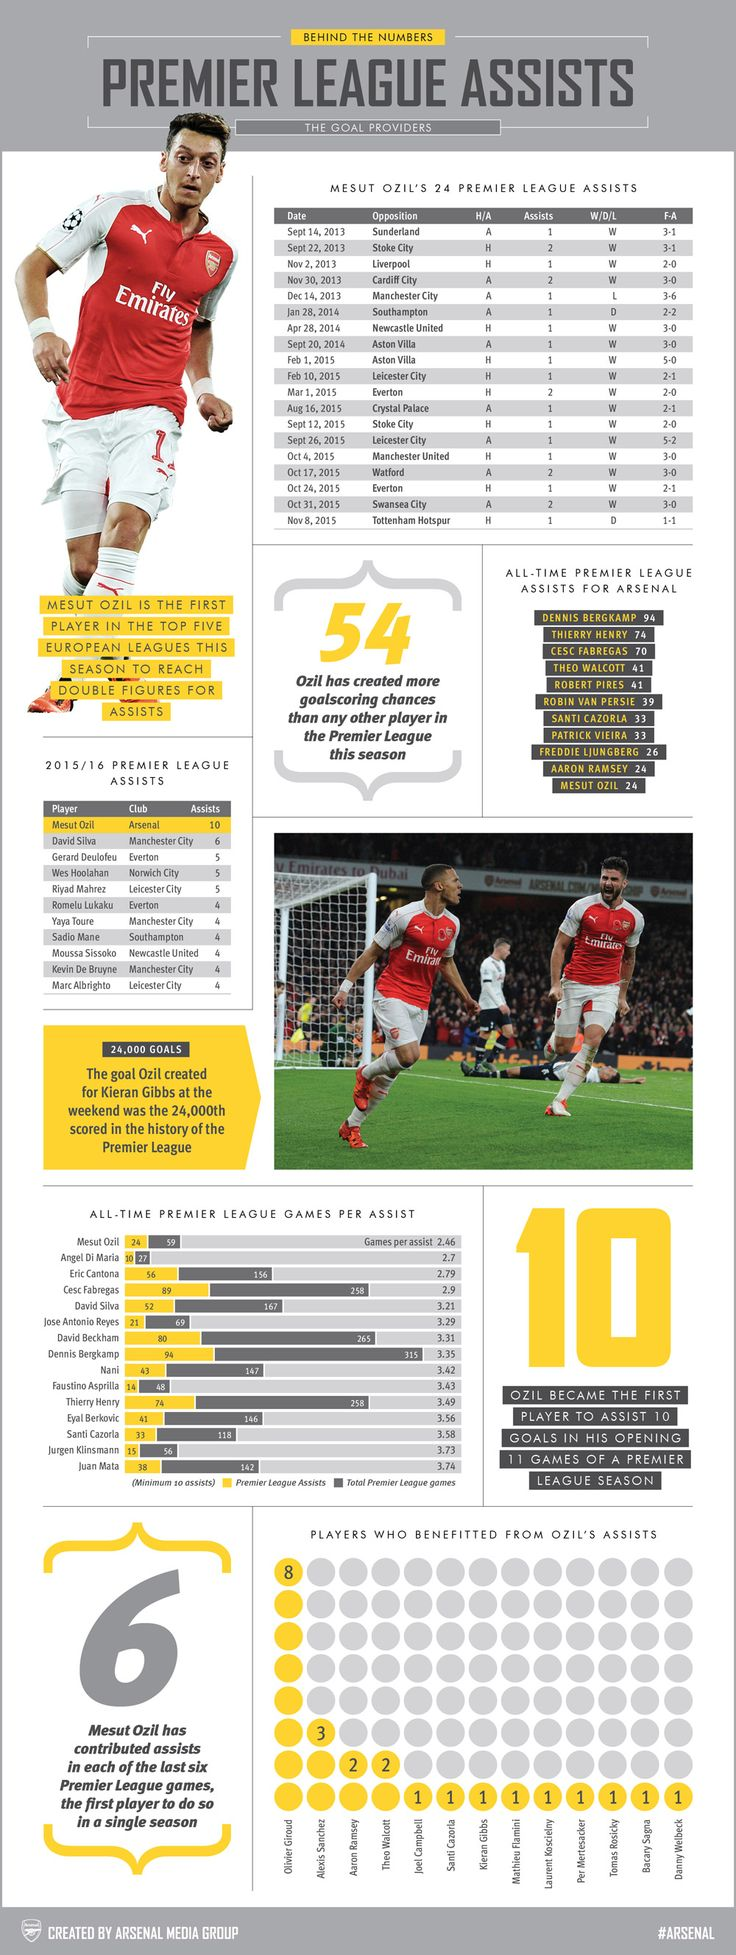 Behind the Numbers: The goal providers. With Mesut Ozil in fine form, our latest infographic examines Arsenal's leading assist makers in the Premier League.